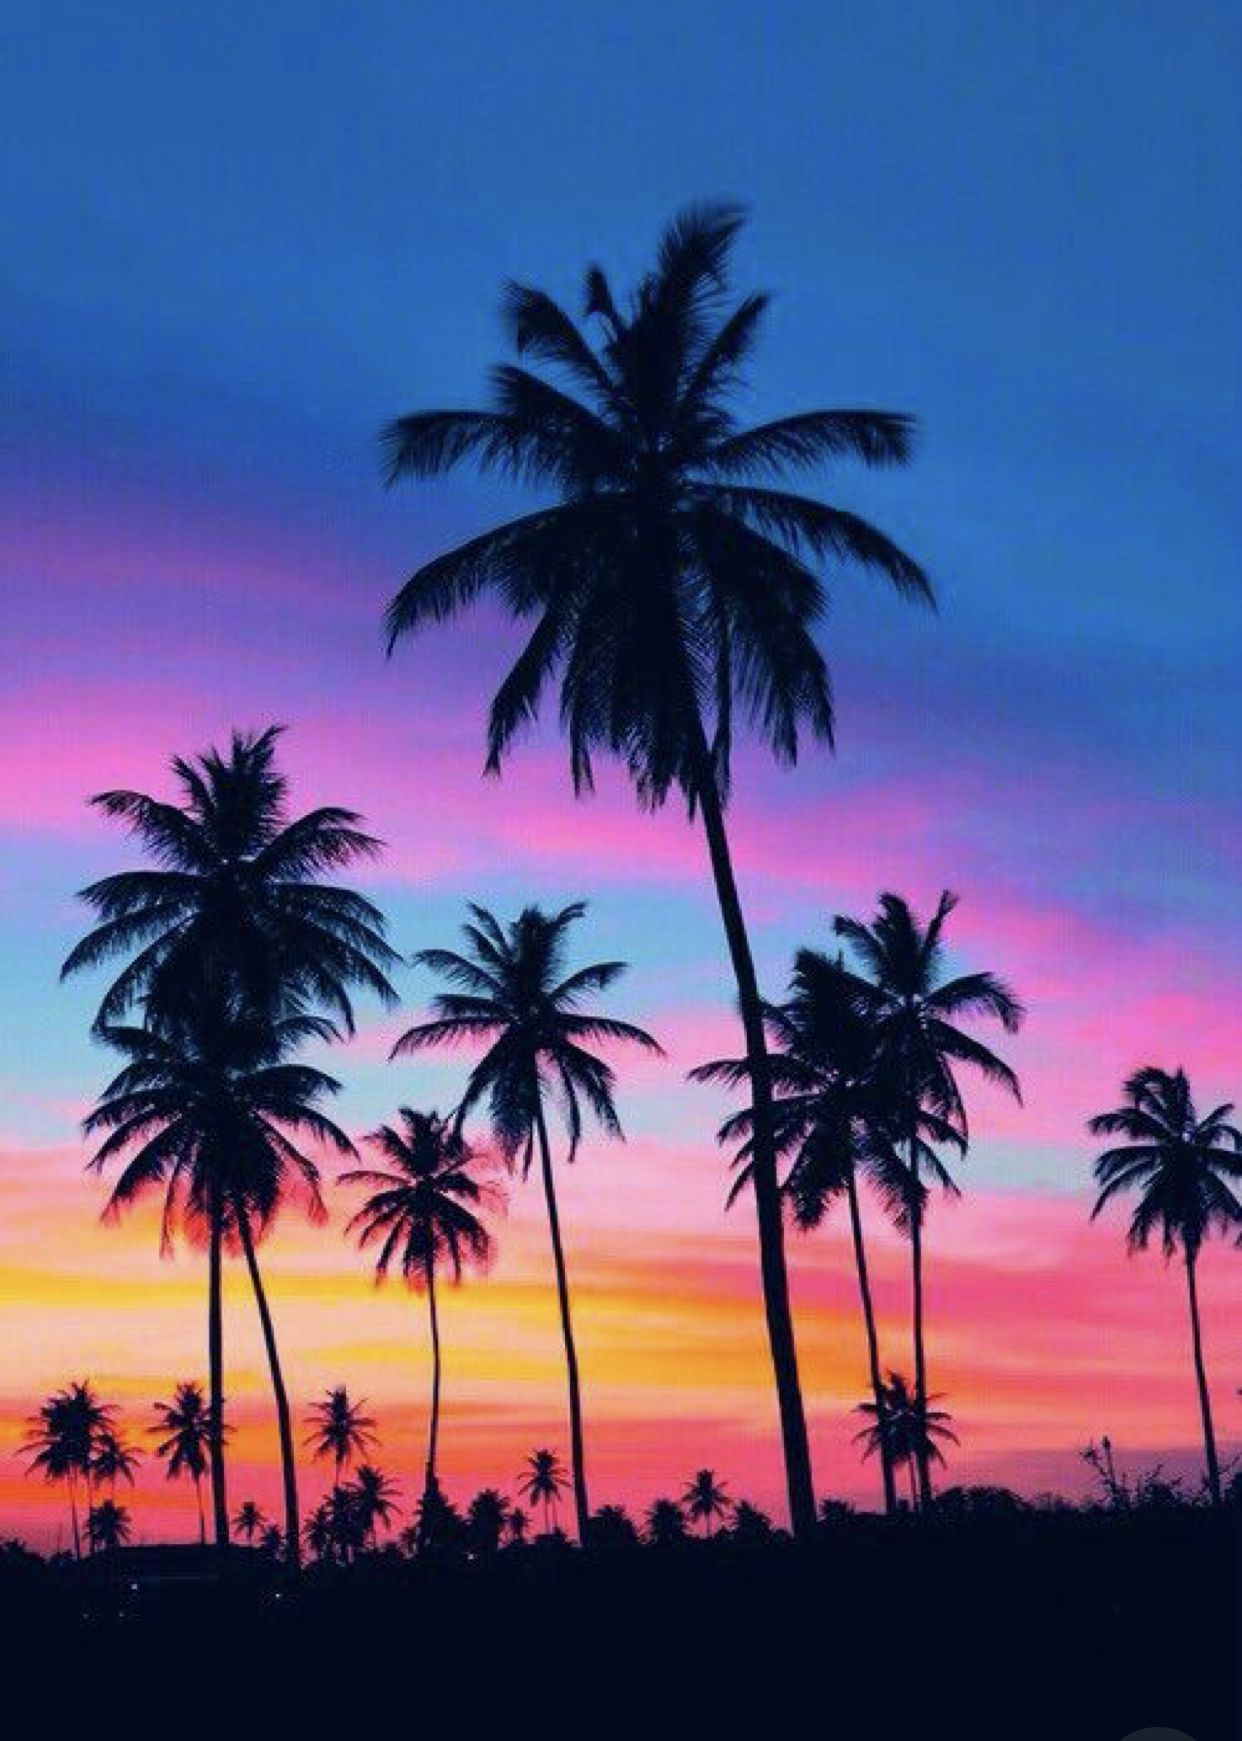 Cute Background Sunset Painting Sunset Iphone Wallpaper Palm Tree Sunset